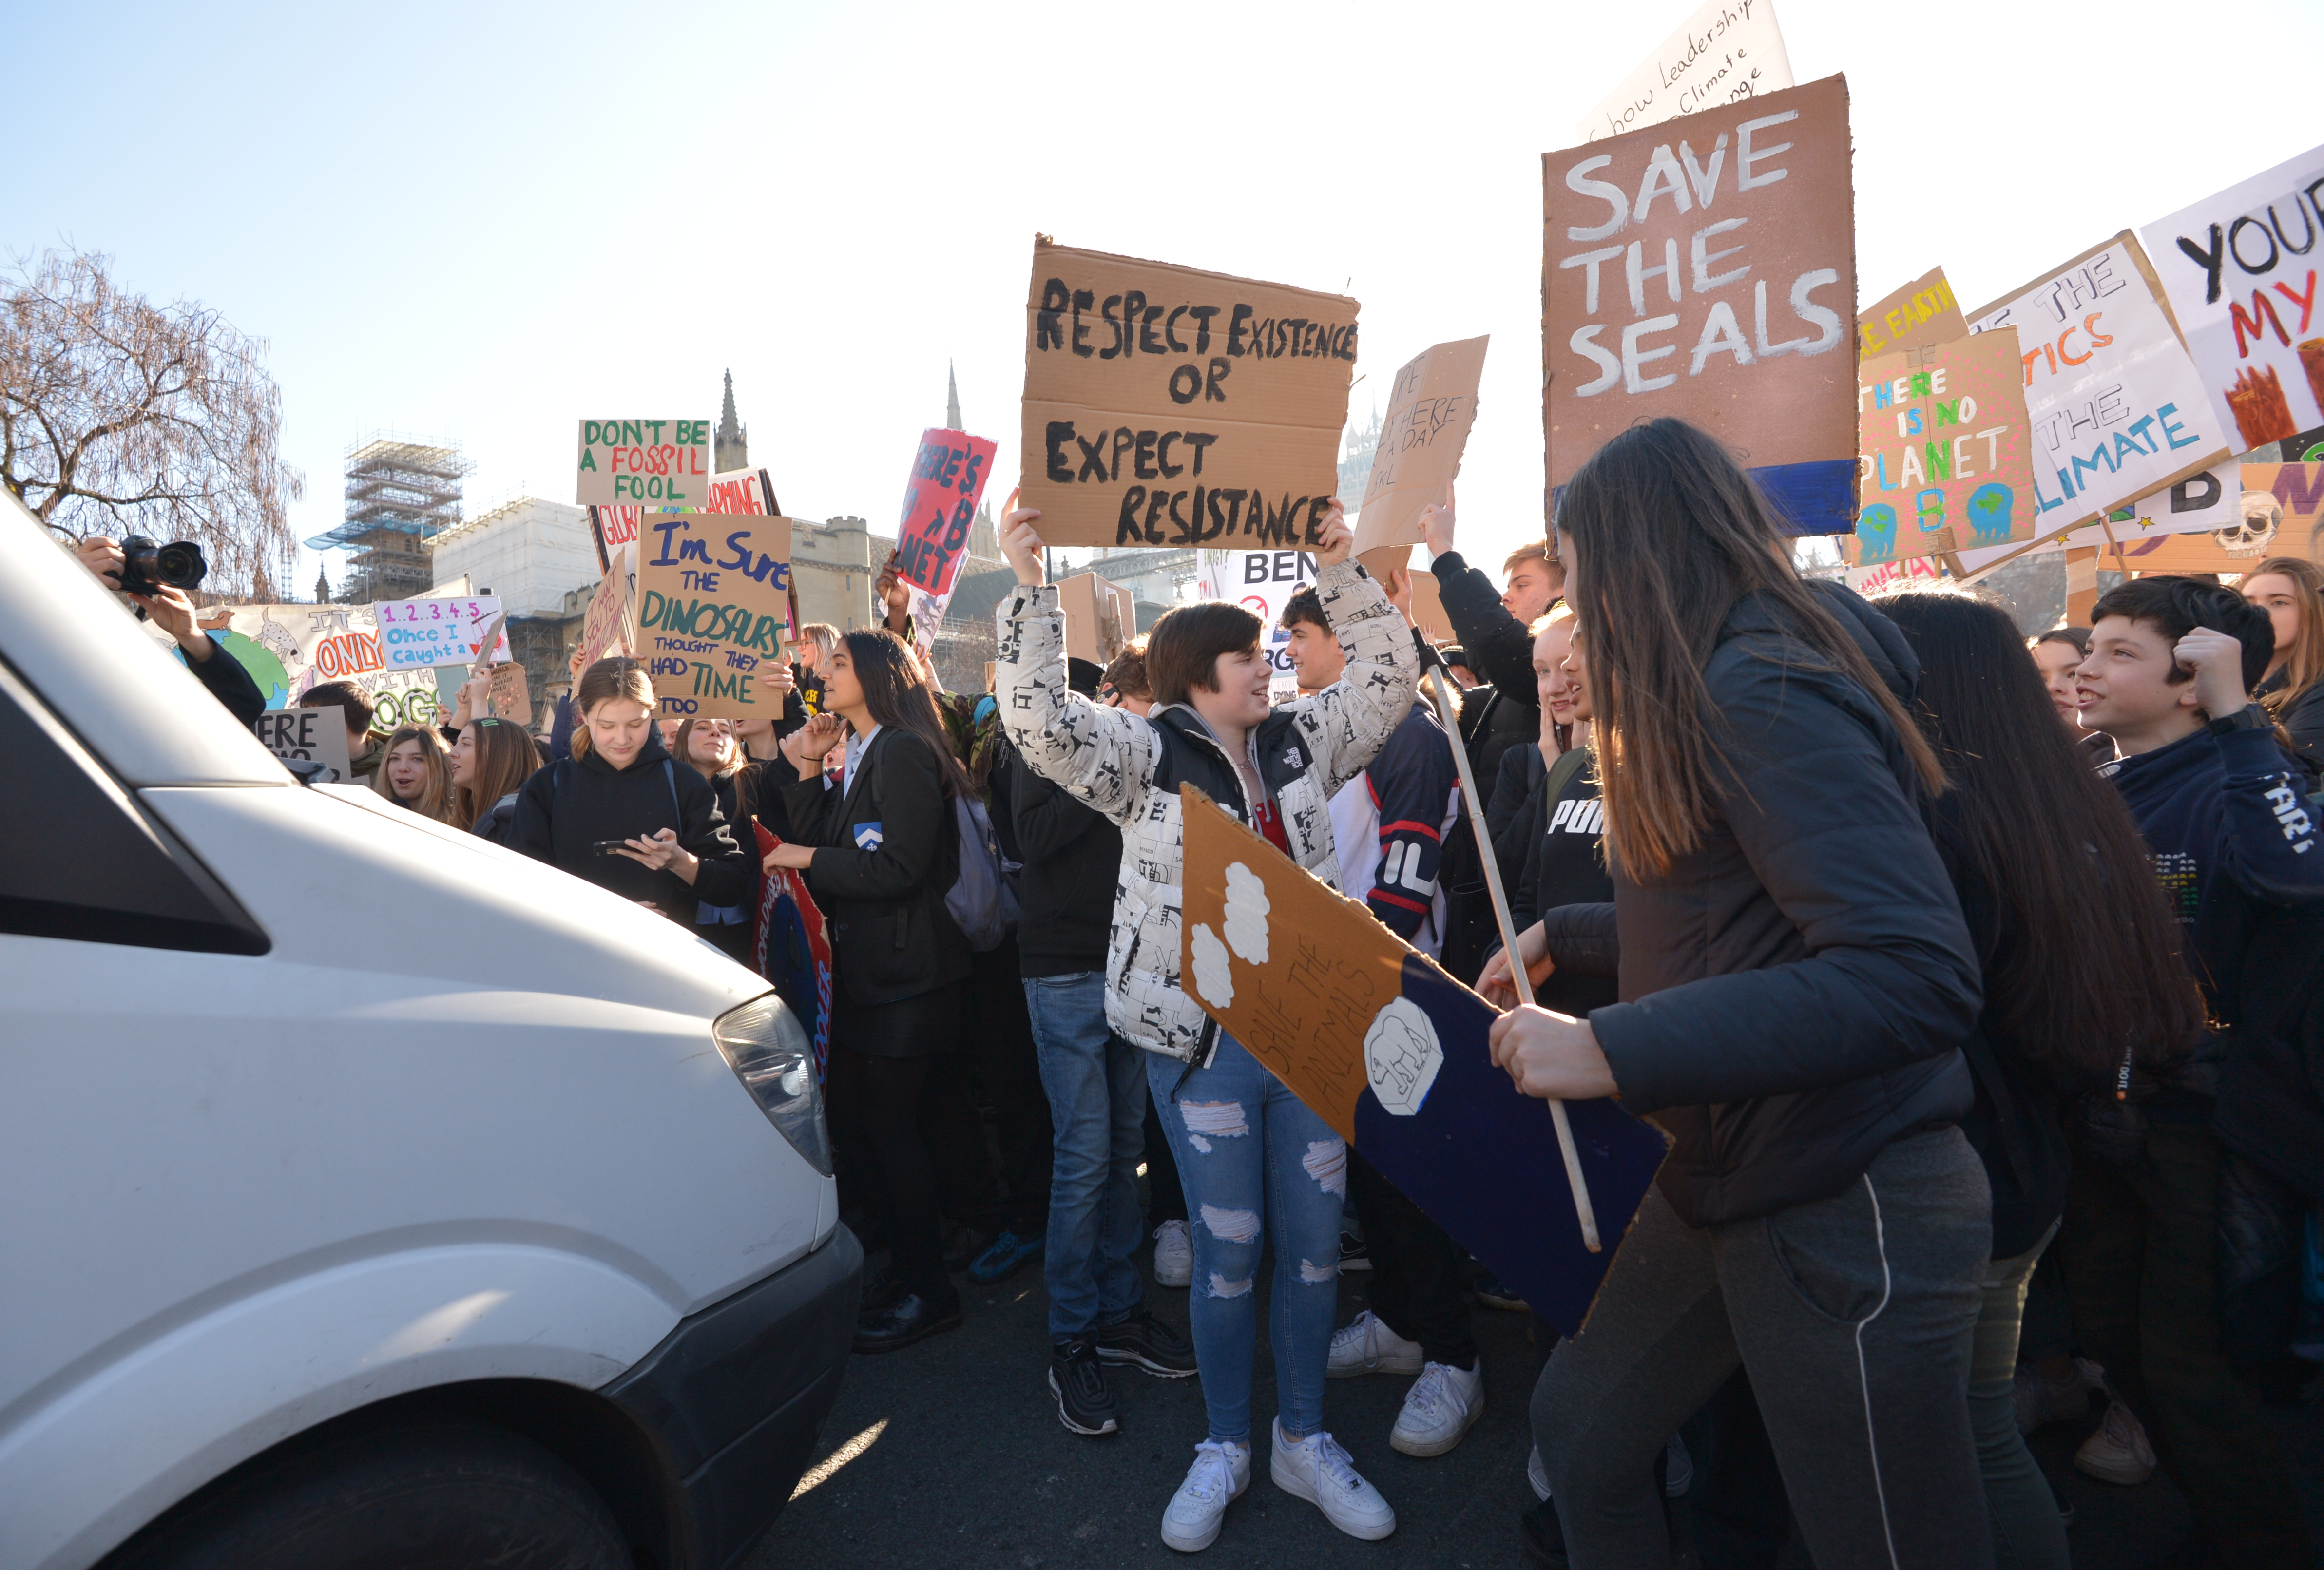 Students from the Youth Strike 4 Climate movement blocking traffic during a climate change protest on Parliament Square in Westminster, London